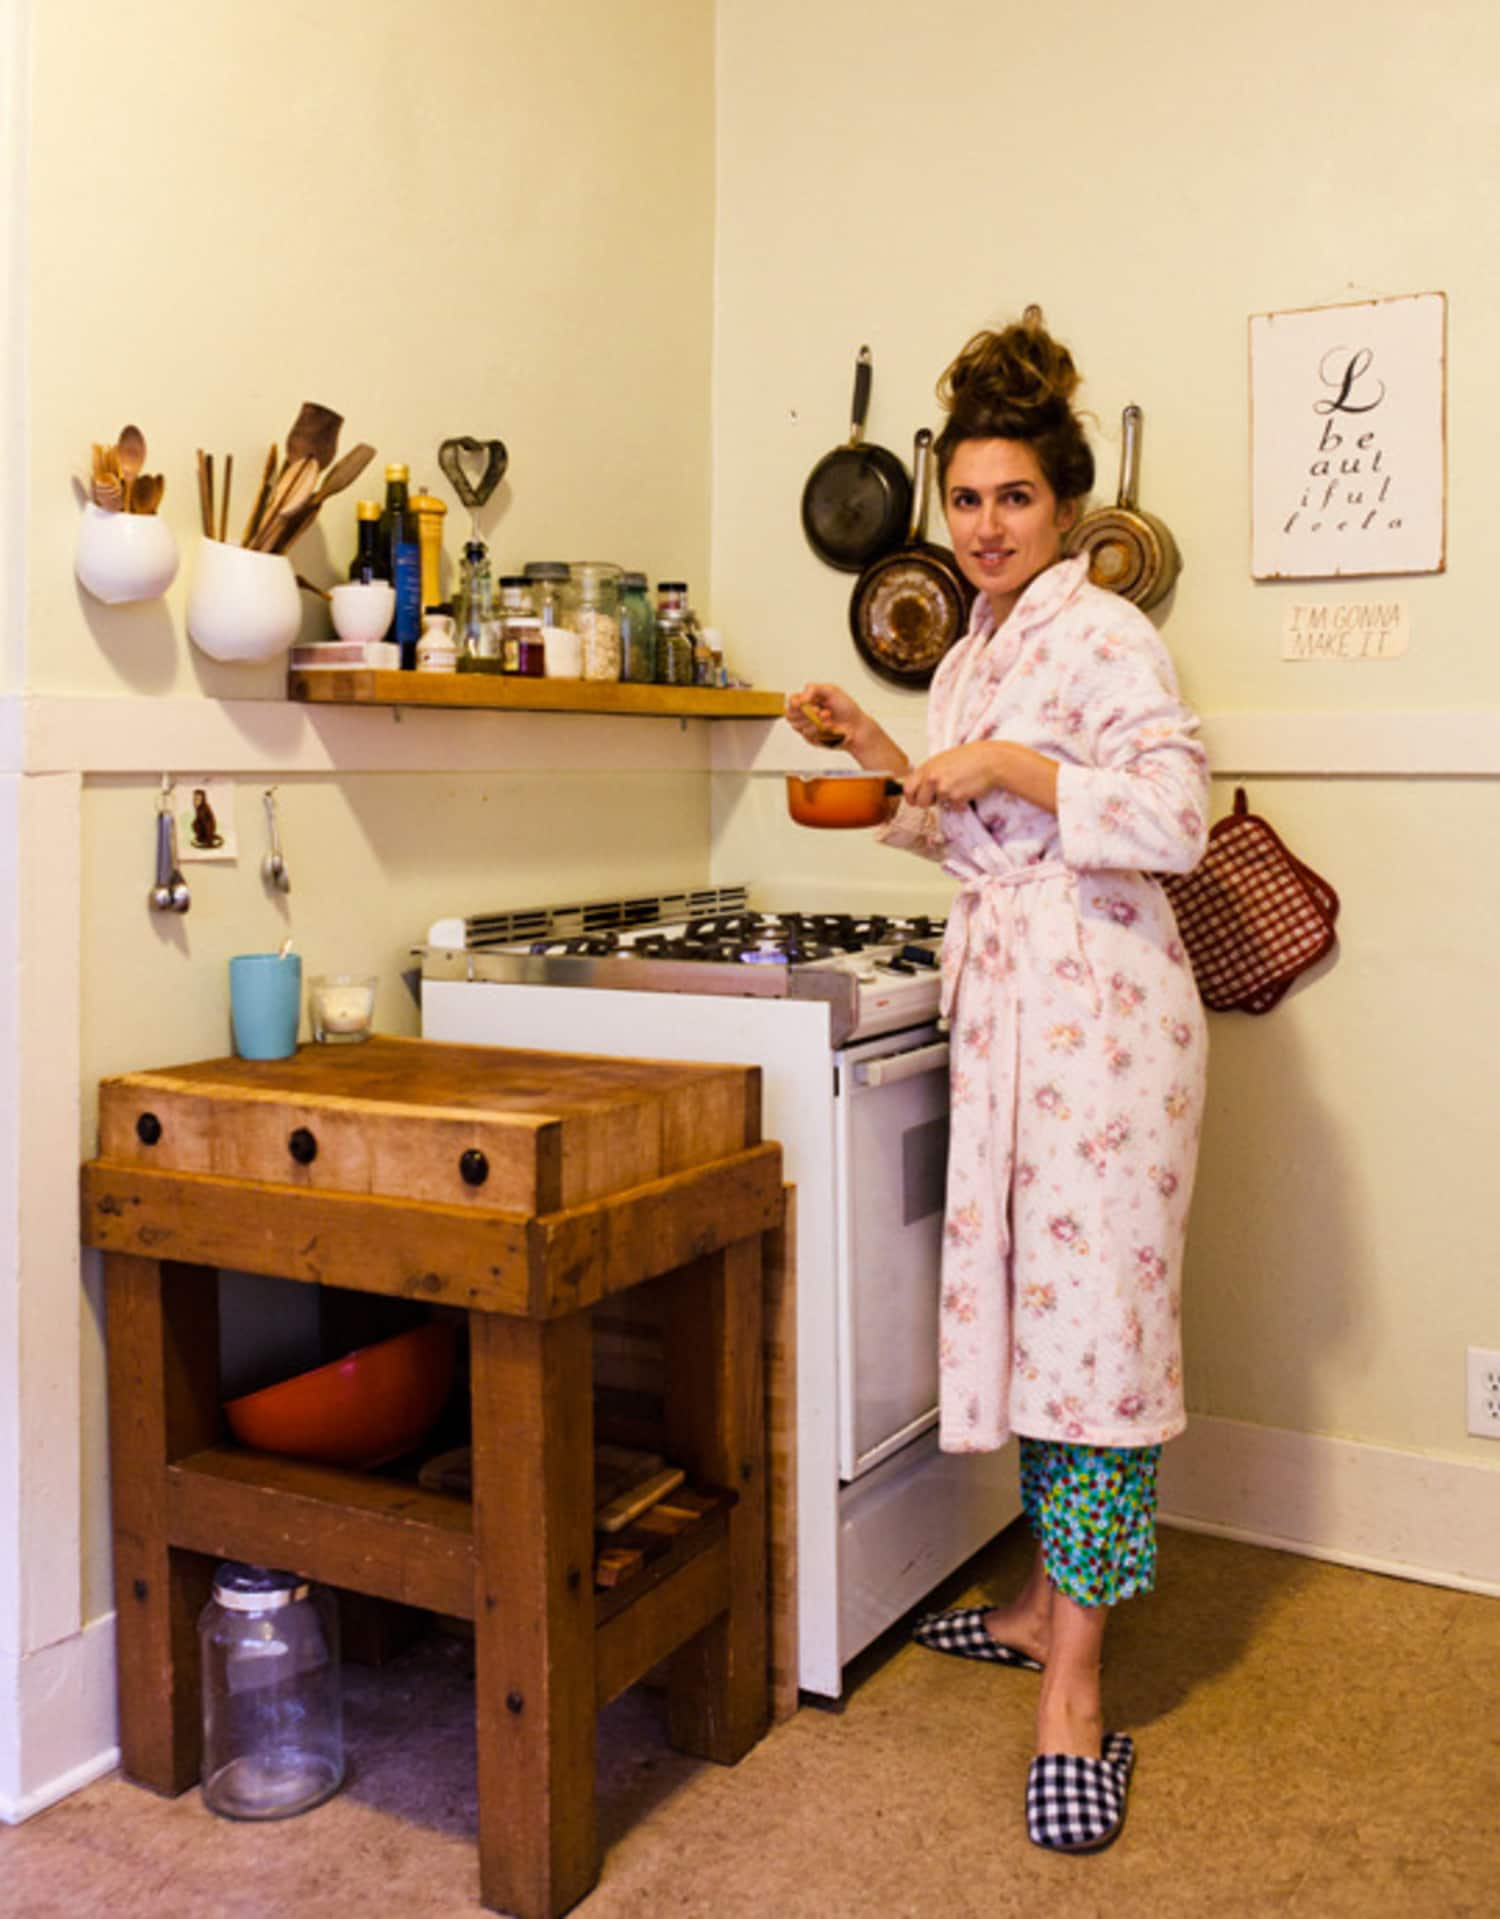 5 Things to Do in the Kitchen Before You Go to Bed